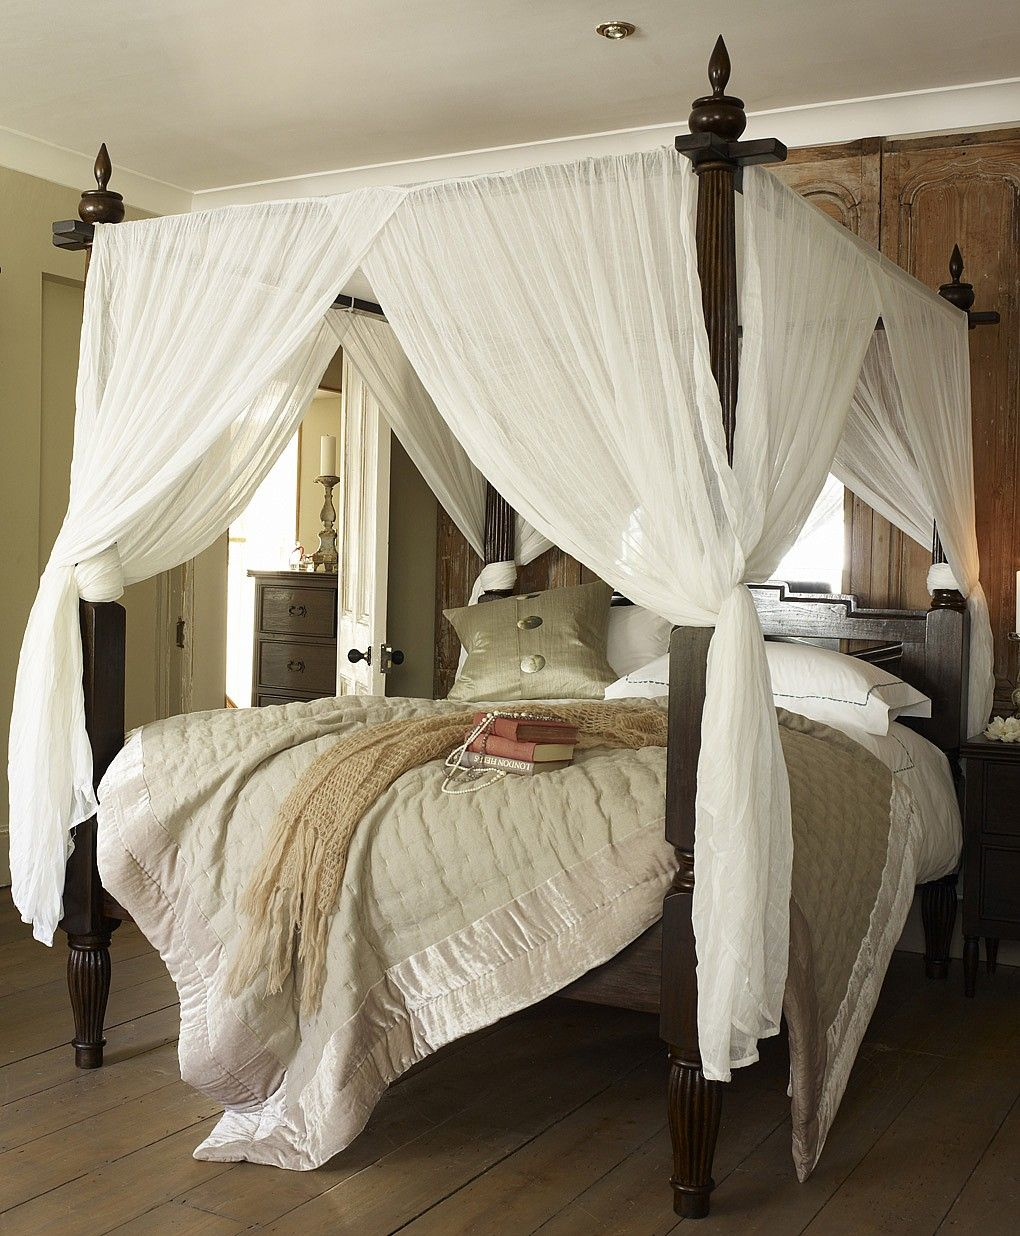 Modern canopy bed curtains - Sewn One Piece Canopy Curtains Crossed Slightly And Gathered Tied Back By Wrapping